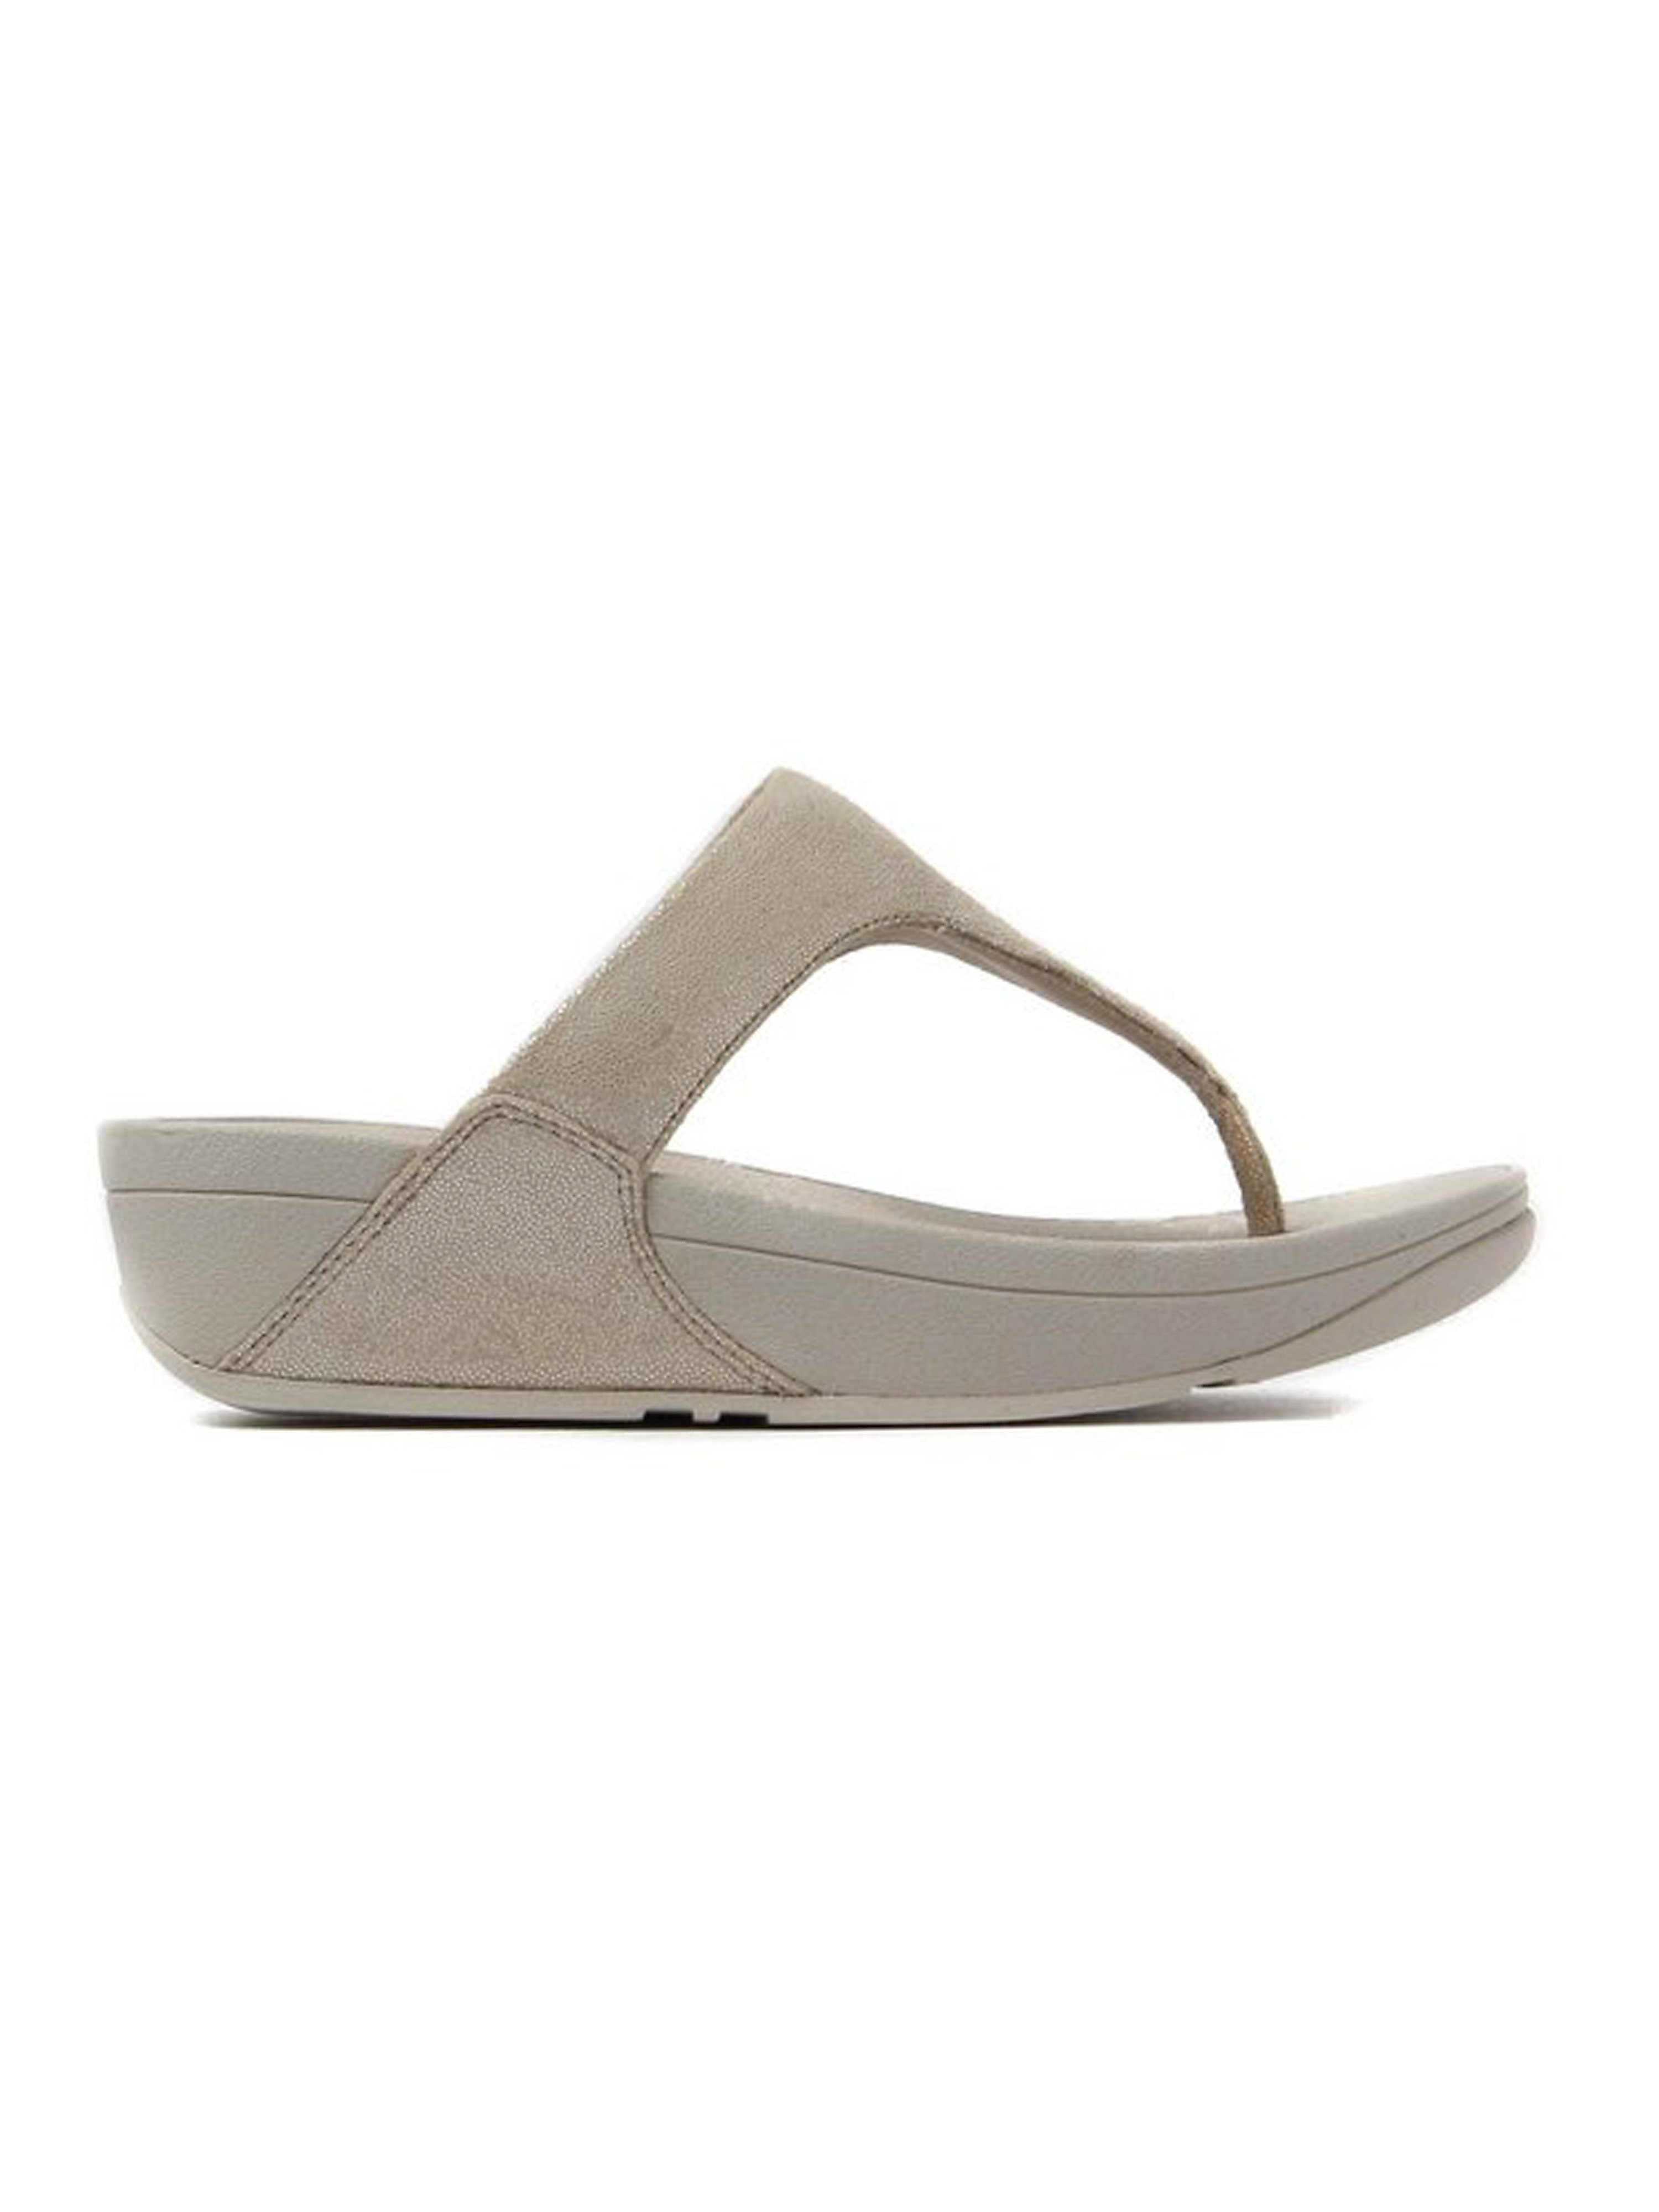 FitFlop Women's Shimmy Suede Toe-Post Sandals Rose Gold